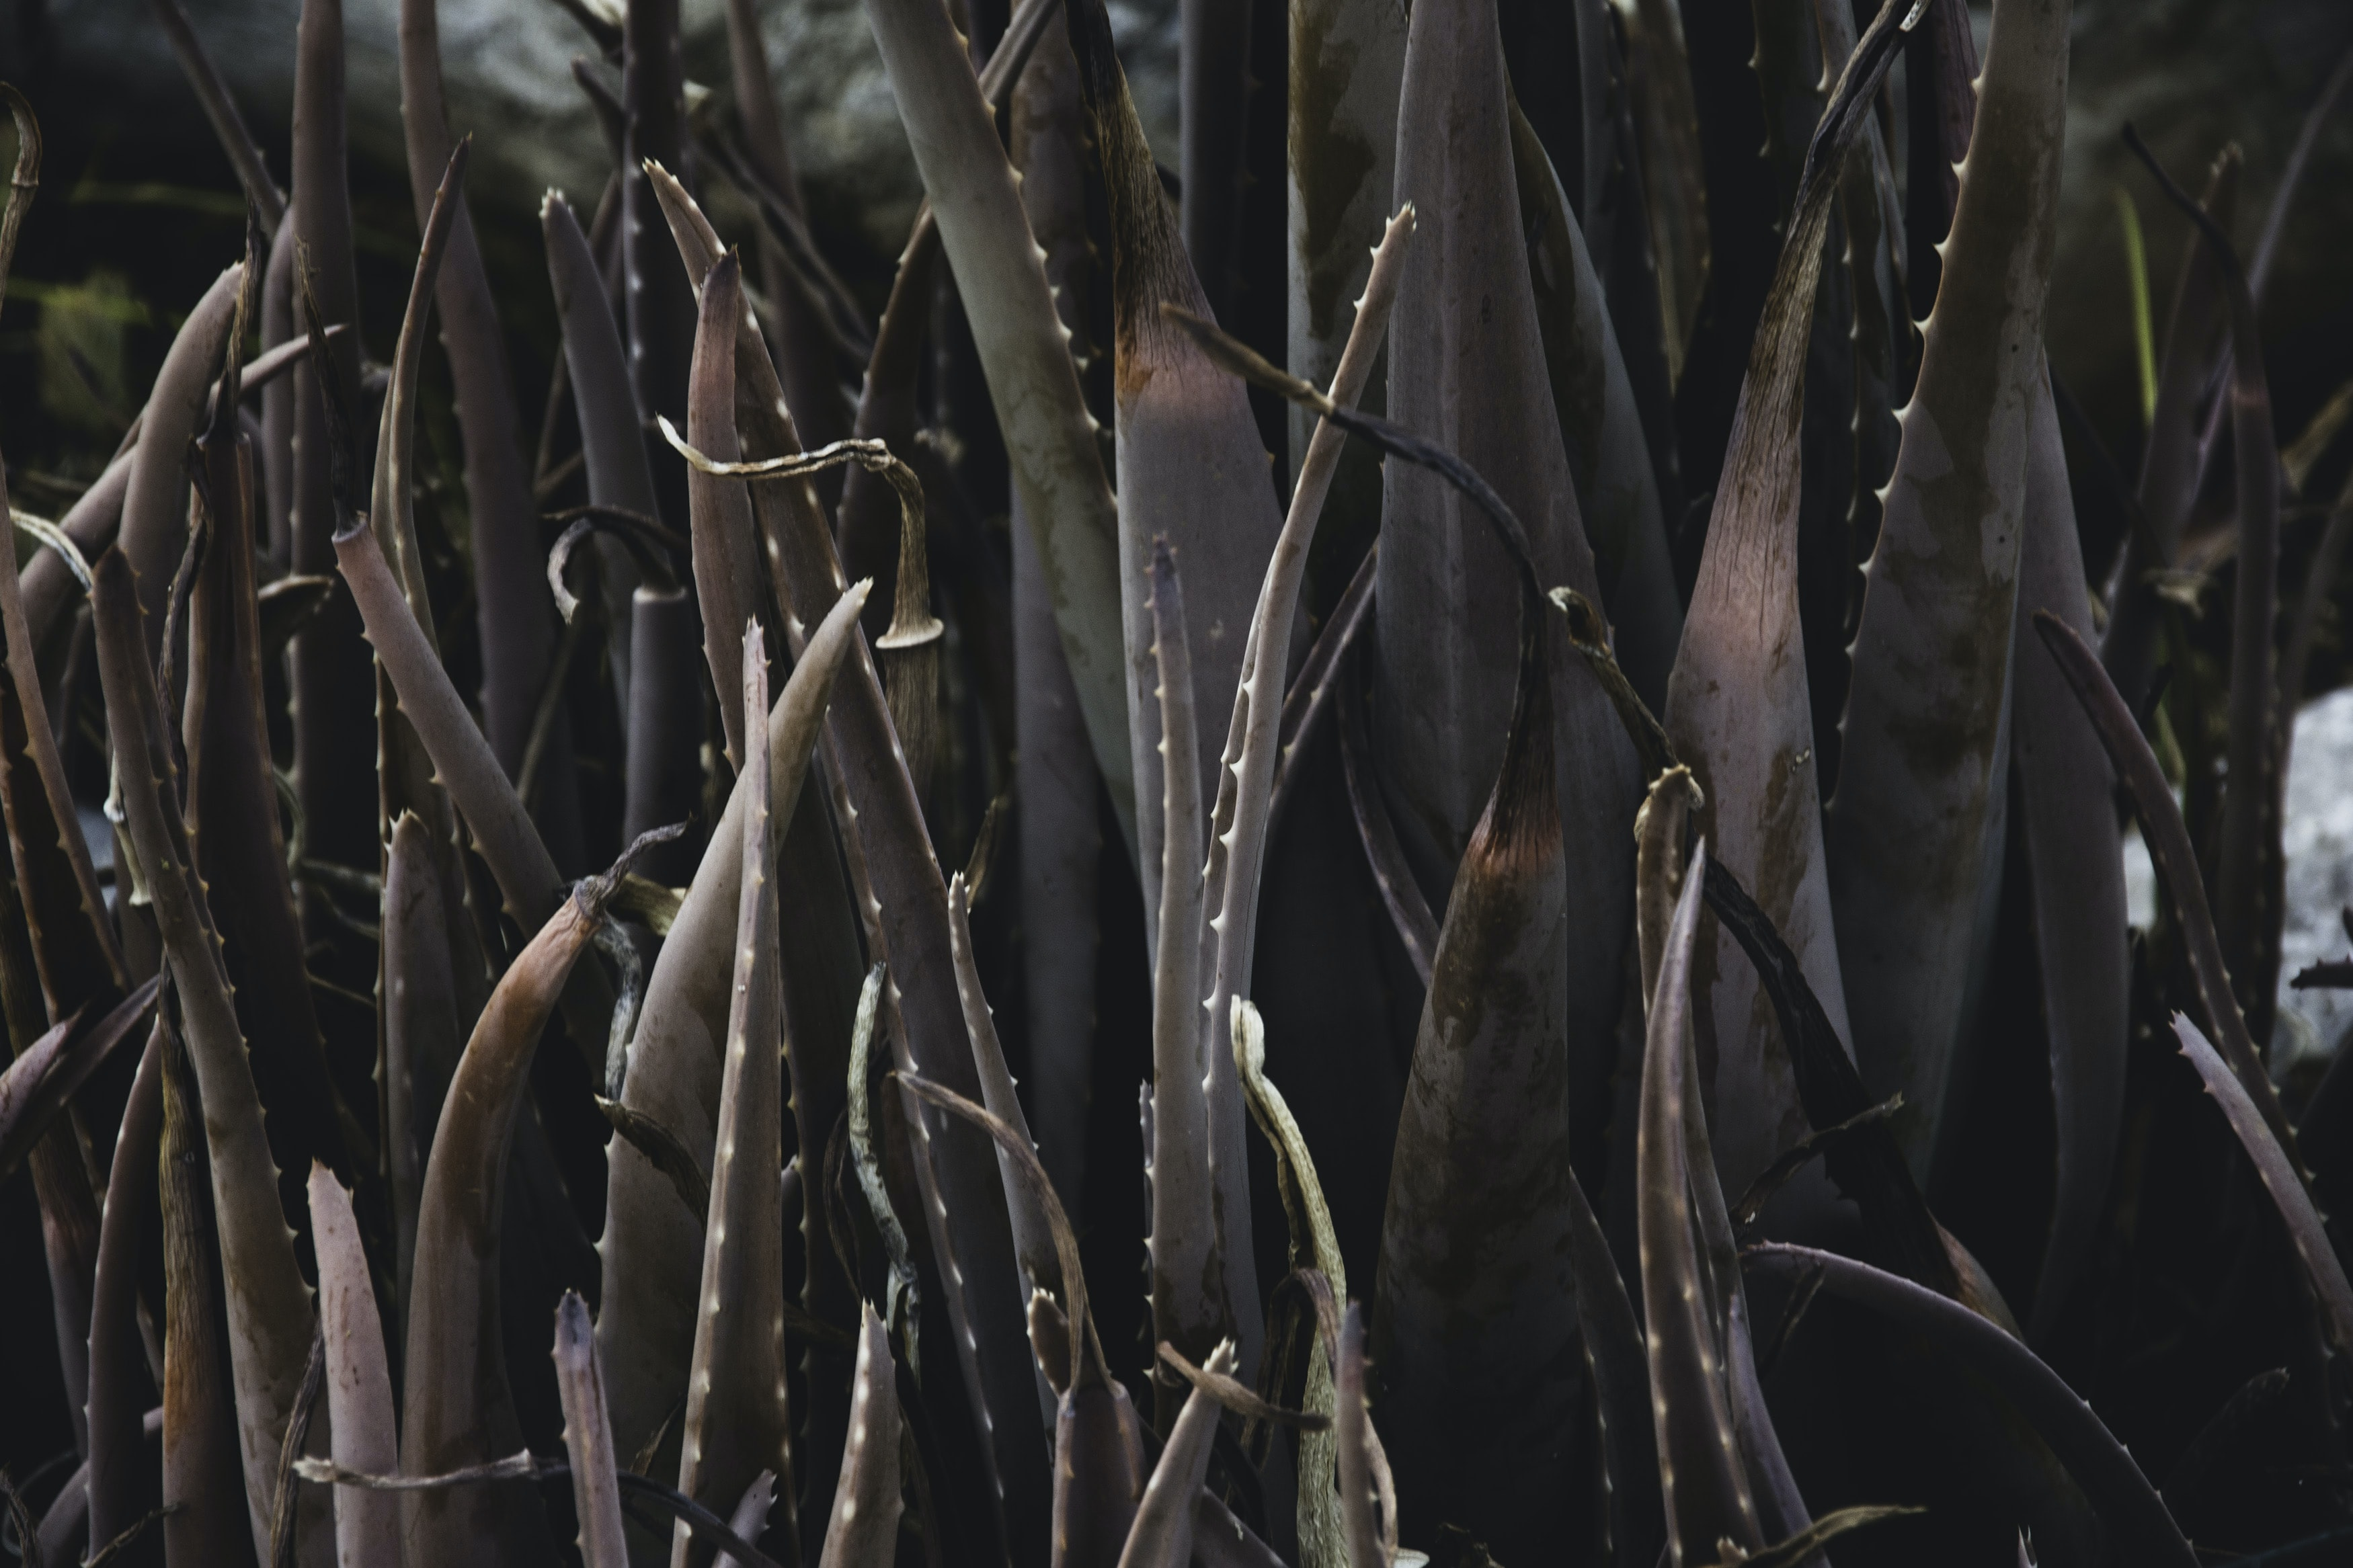 brown leaf plants with spikes on sides